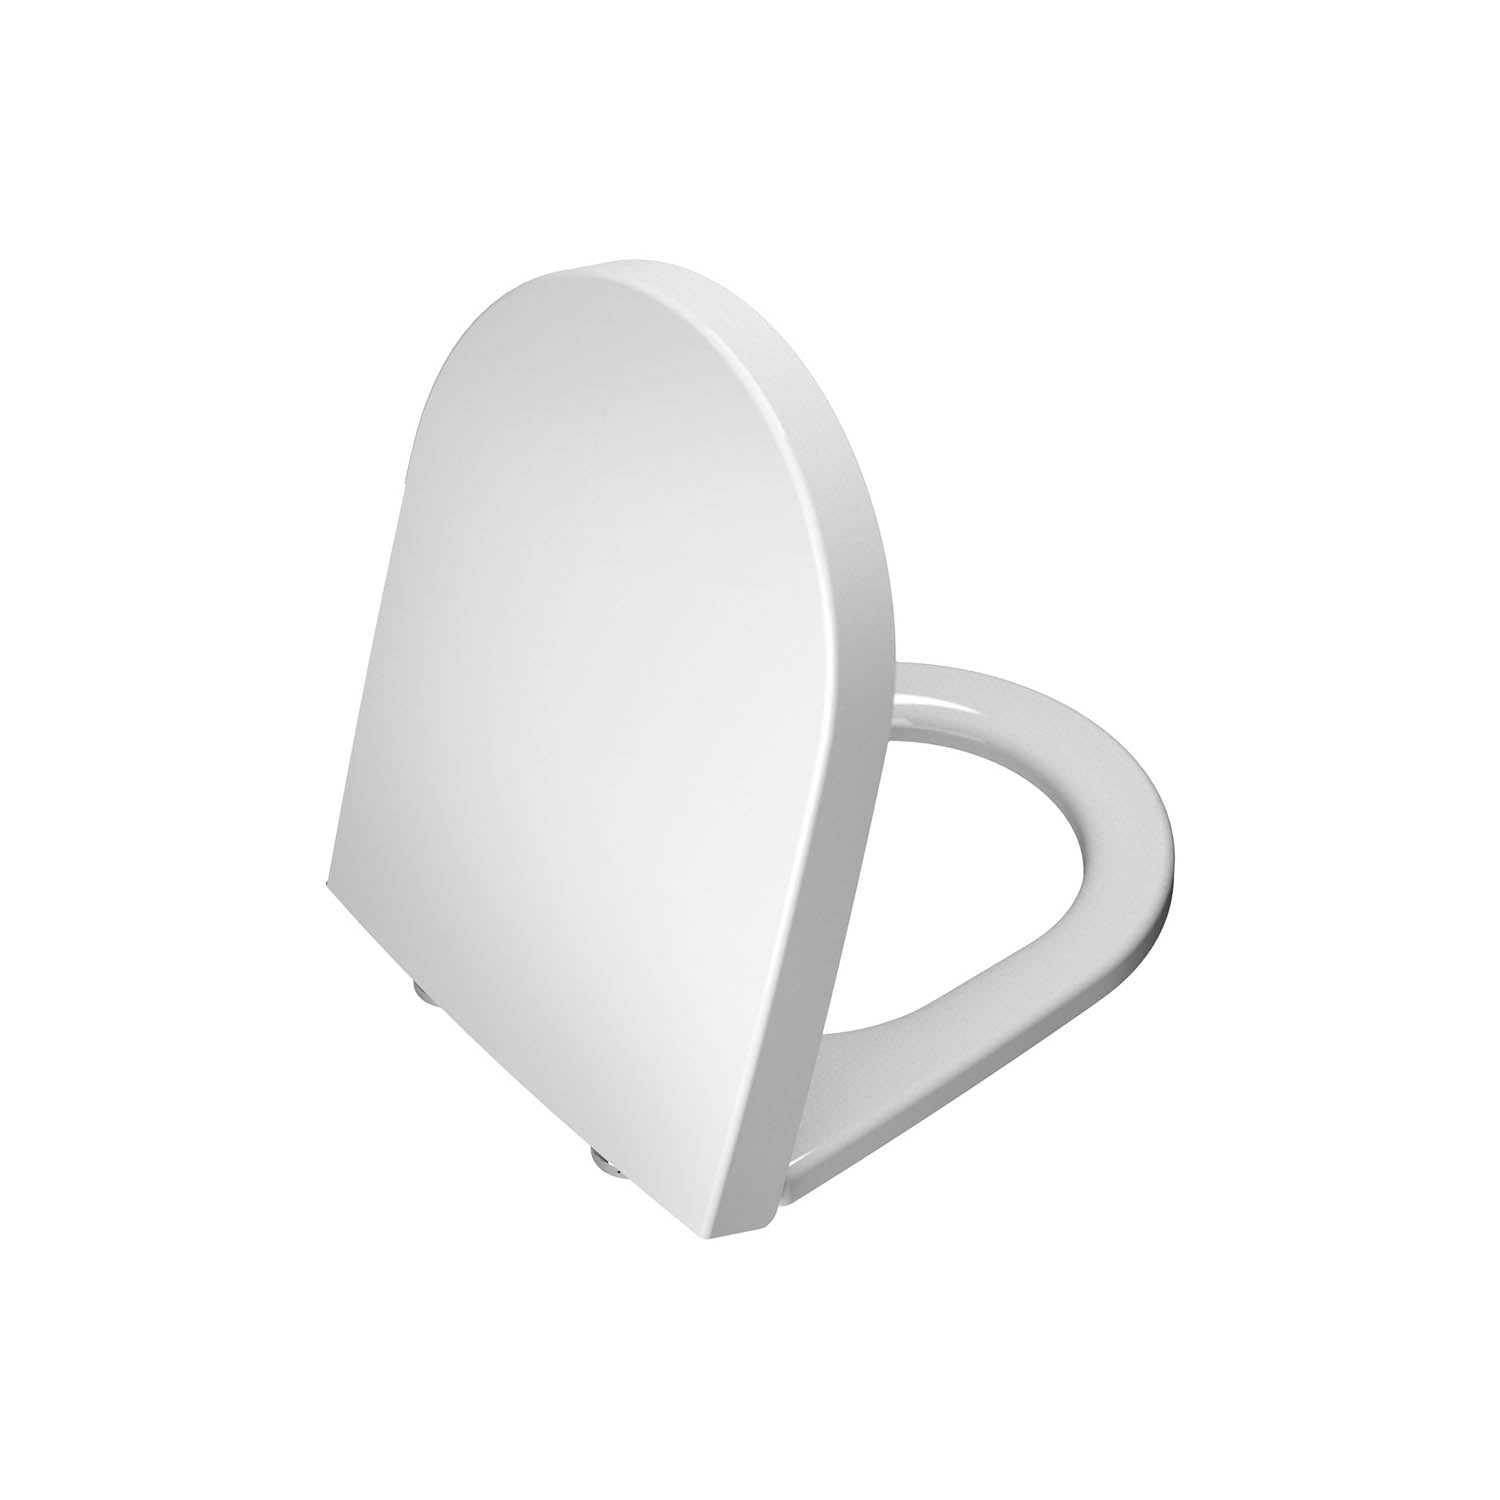 Matrix Long Projection Toilet Seat and Cover on a white background